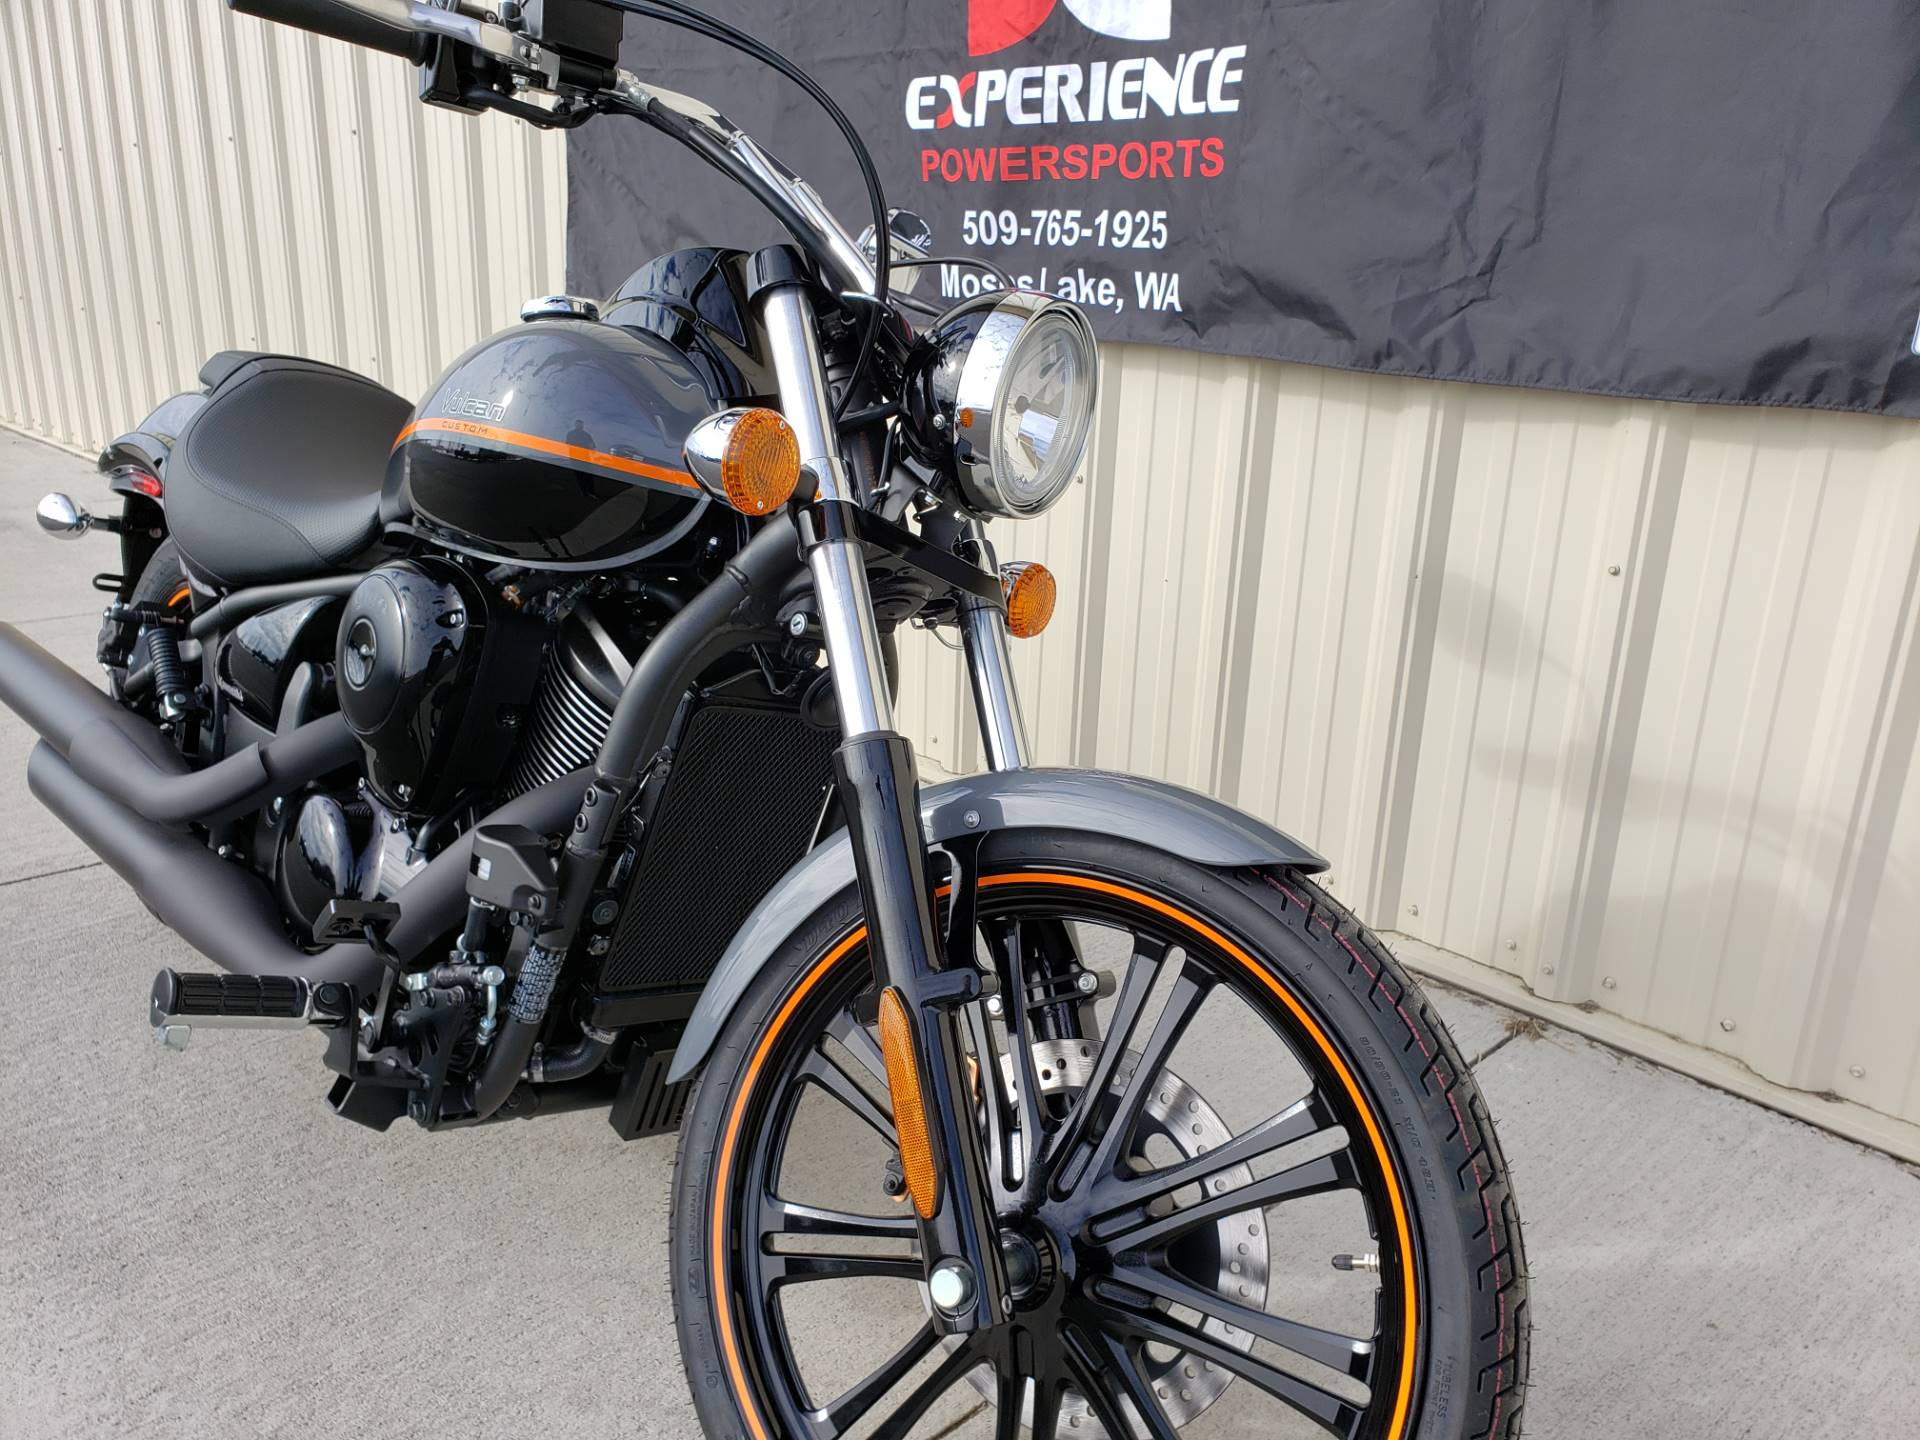 2019 Kawasaki Vulcan 900 Custom in Moses Lake, Washington - Photo 2